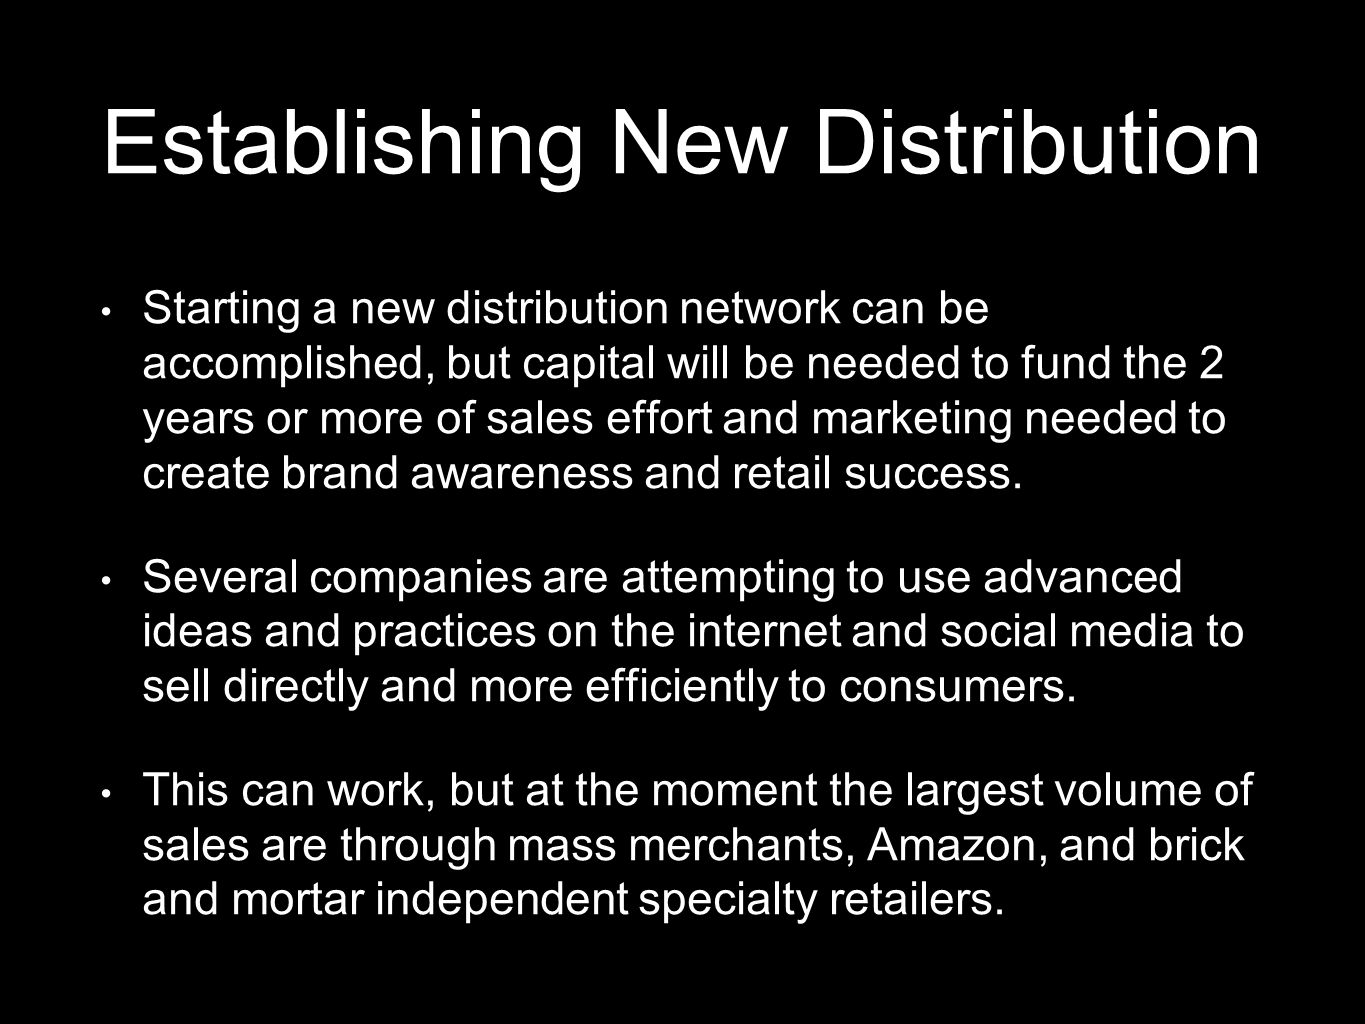 Establishing New Distribution Starting a new distribution network can be accomplished, but capital will be needed to fund the 2 years or more of sales effort and marketing needed to create brand awareness and retail success.